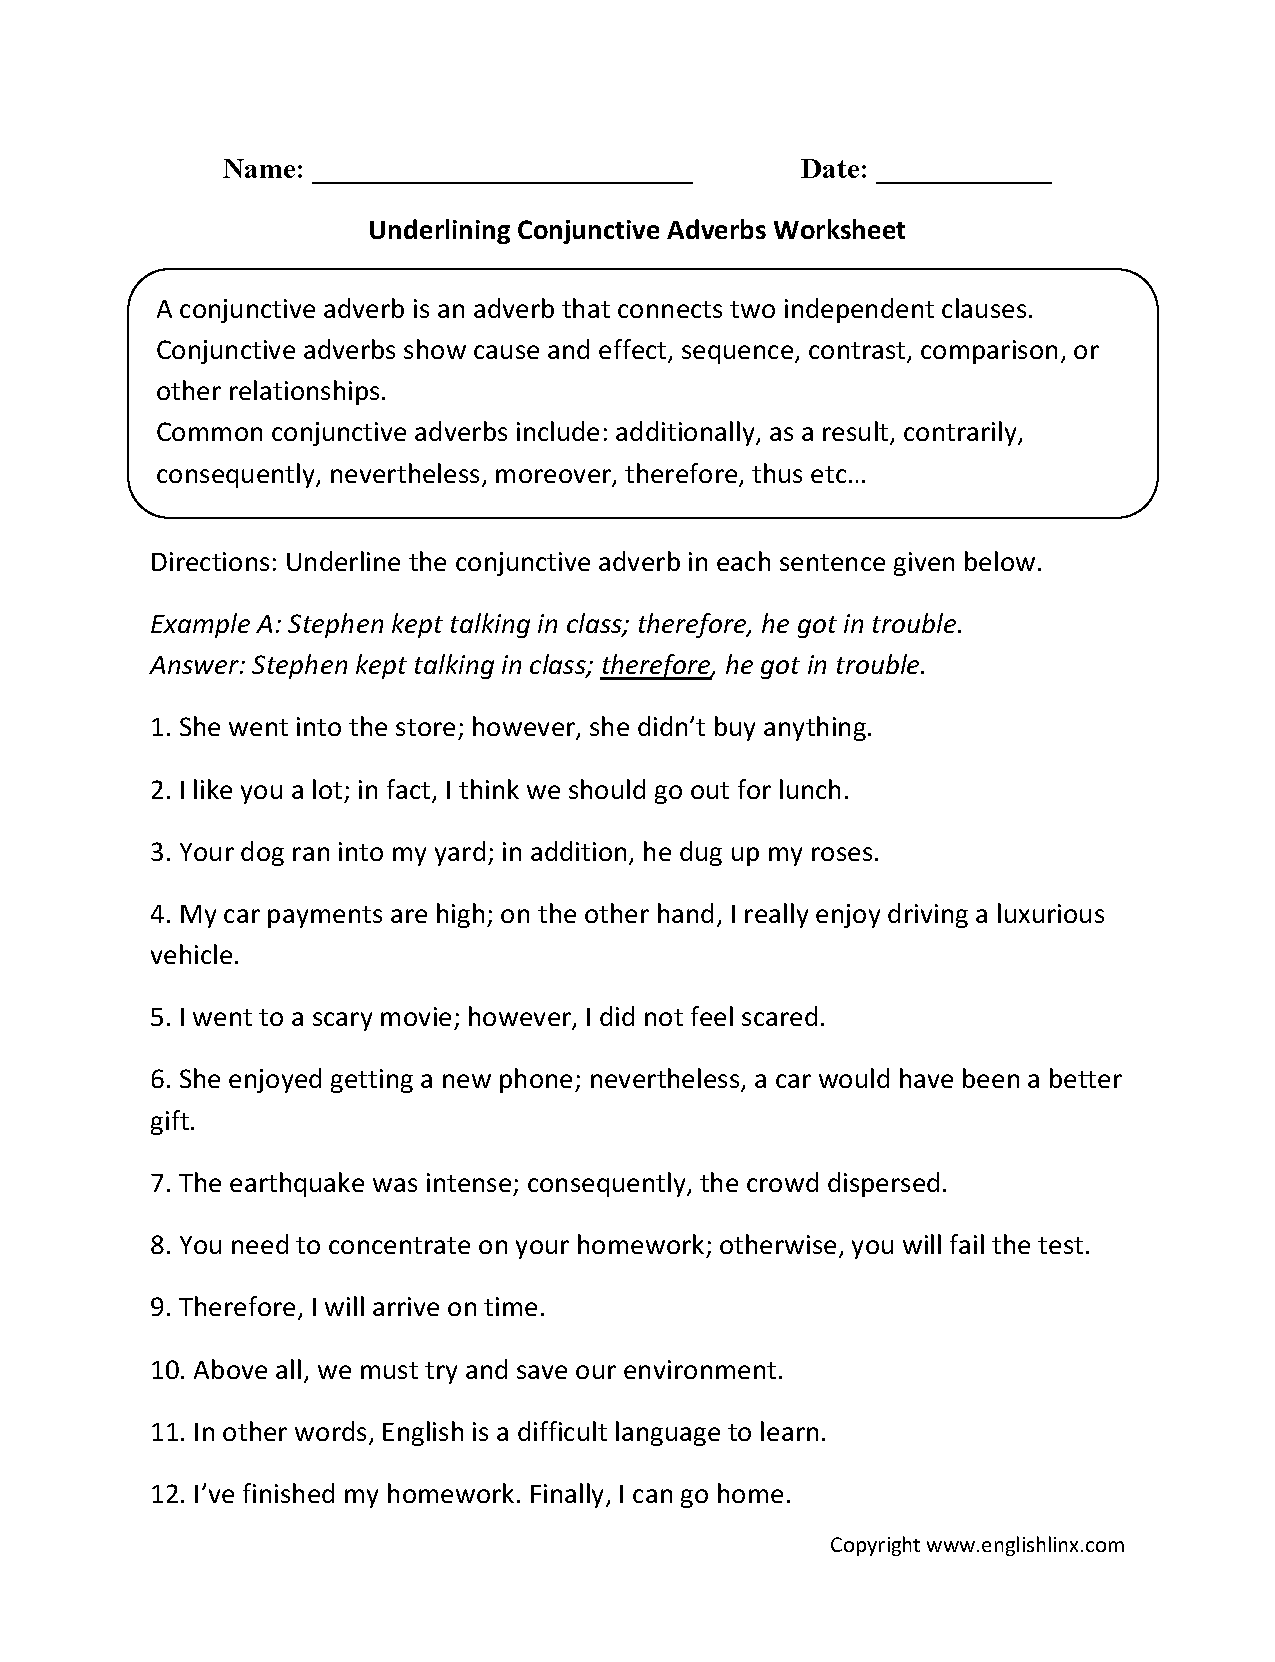 Weirdmailus  Gorgeous Englishlinxcom  Conjunctions Worksheets With Marvelous Worksheet With Charming Ratio And Proportion Math Worksheets Also Free Printable Kid Worksheets In Addition Integer Addition Worksheets And Maths Division Worksheets For Grade  As Well As Doubles Worksheet Ks Additionally Diphthong Worksheet From Englishlinxcom With Weirdmailus  Marvelous Englishlinxcom  Conjunctions Worksheets With Charming Worksheet And Gorgeous Ratio And Proportion Math Worksheets Also Free Printable Kid Worksheets In Addition Integer Addition Worksheets From Englishlinxcom